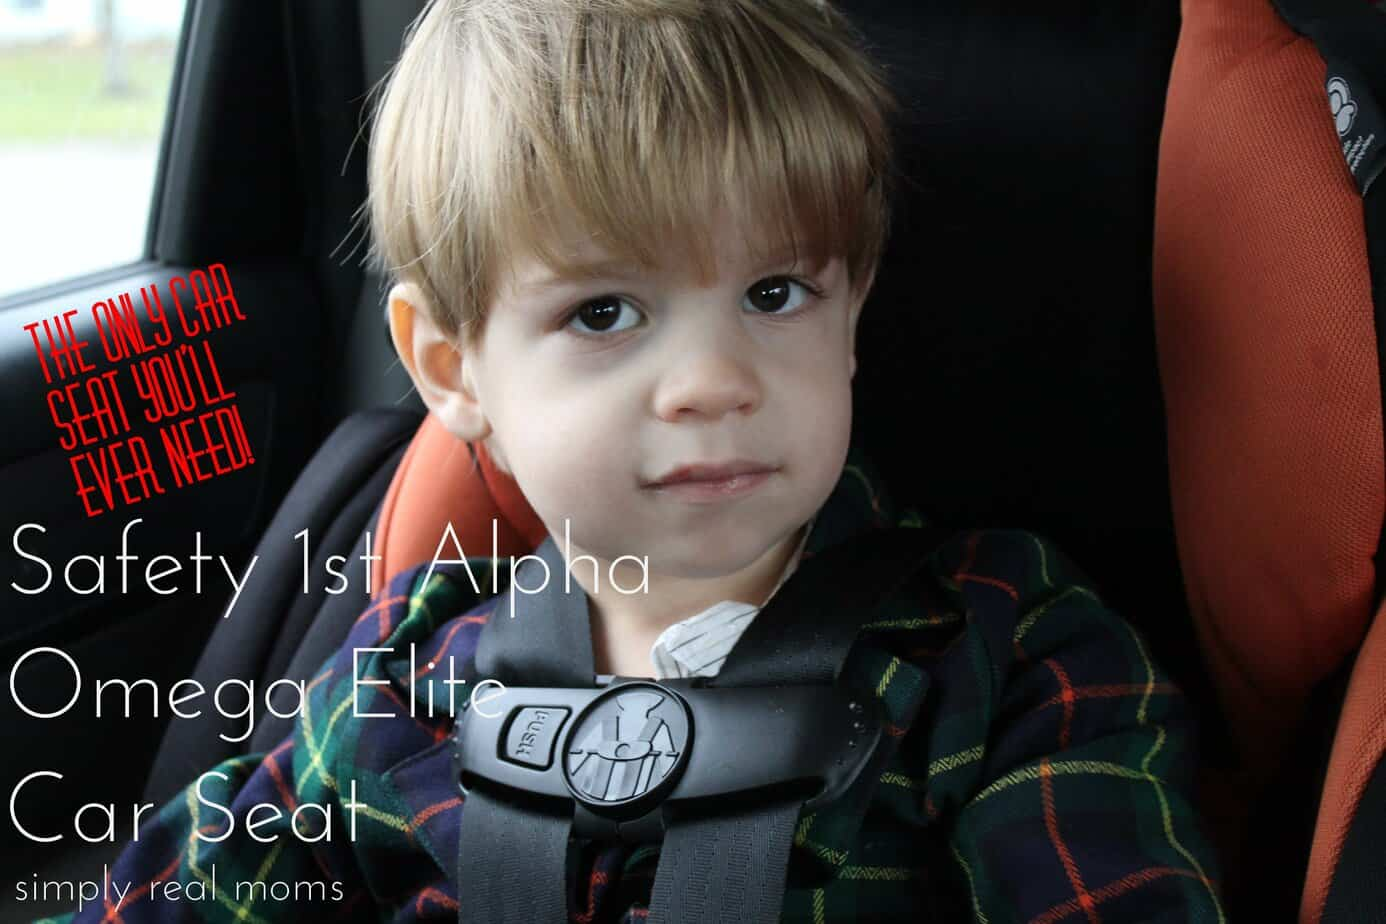 Safety 1st Alpha Omega Elite Car Seat The Only Youll Ever